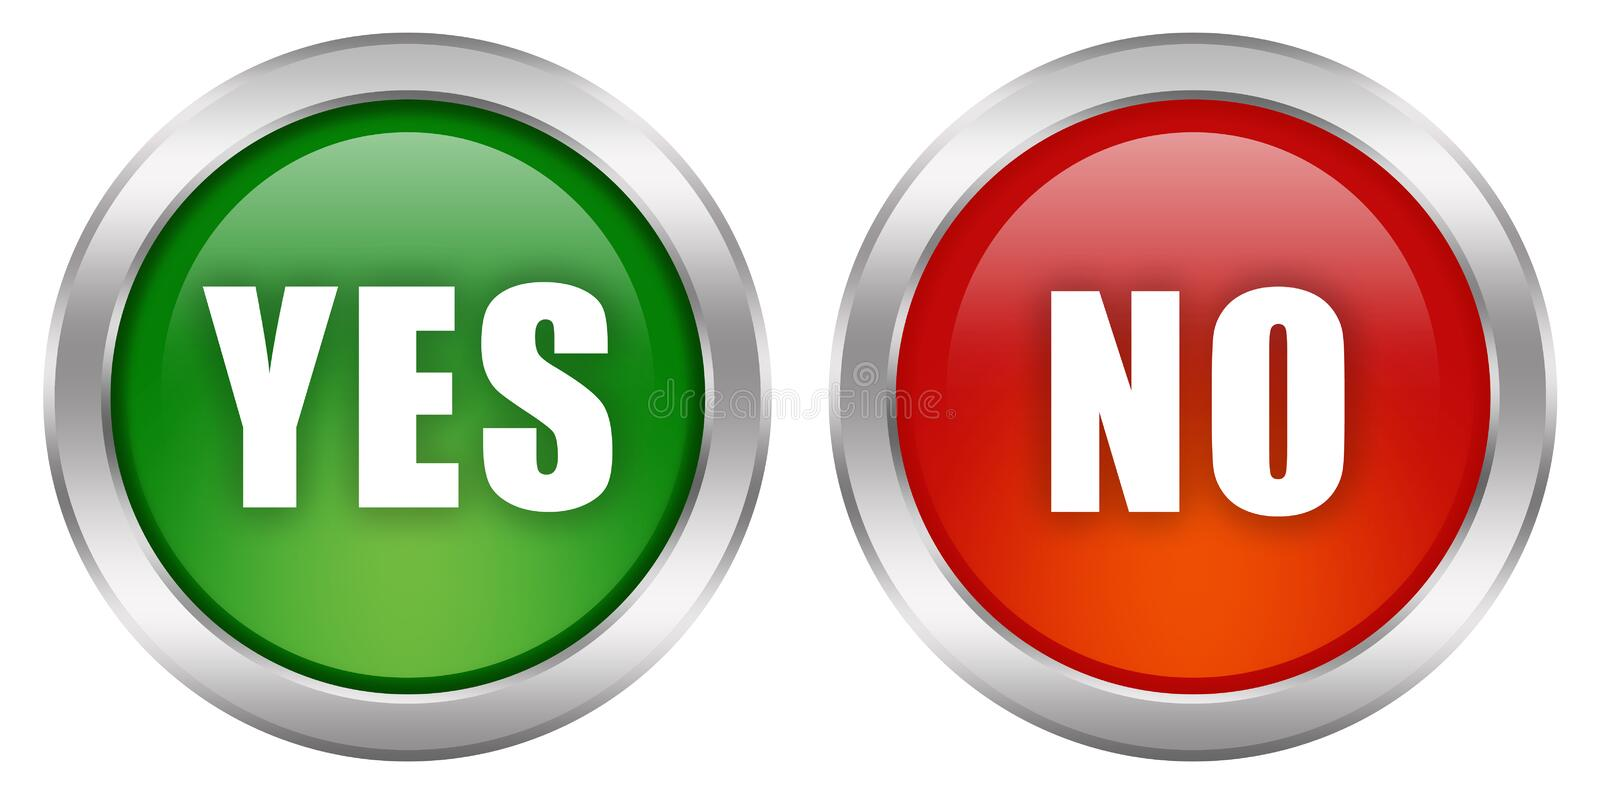 Yes no button vector illustration